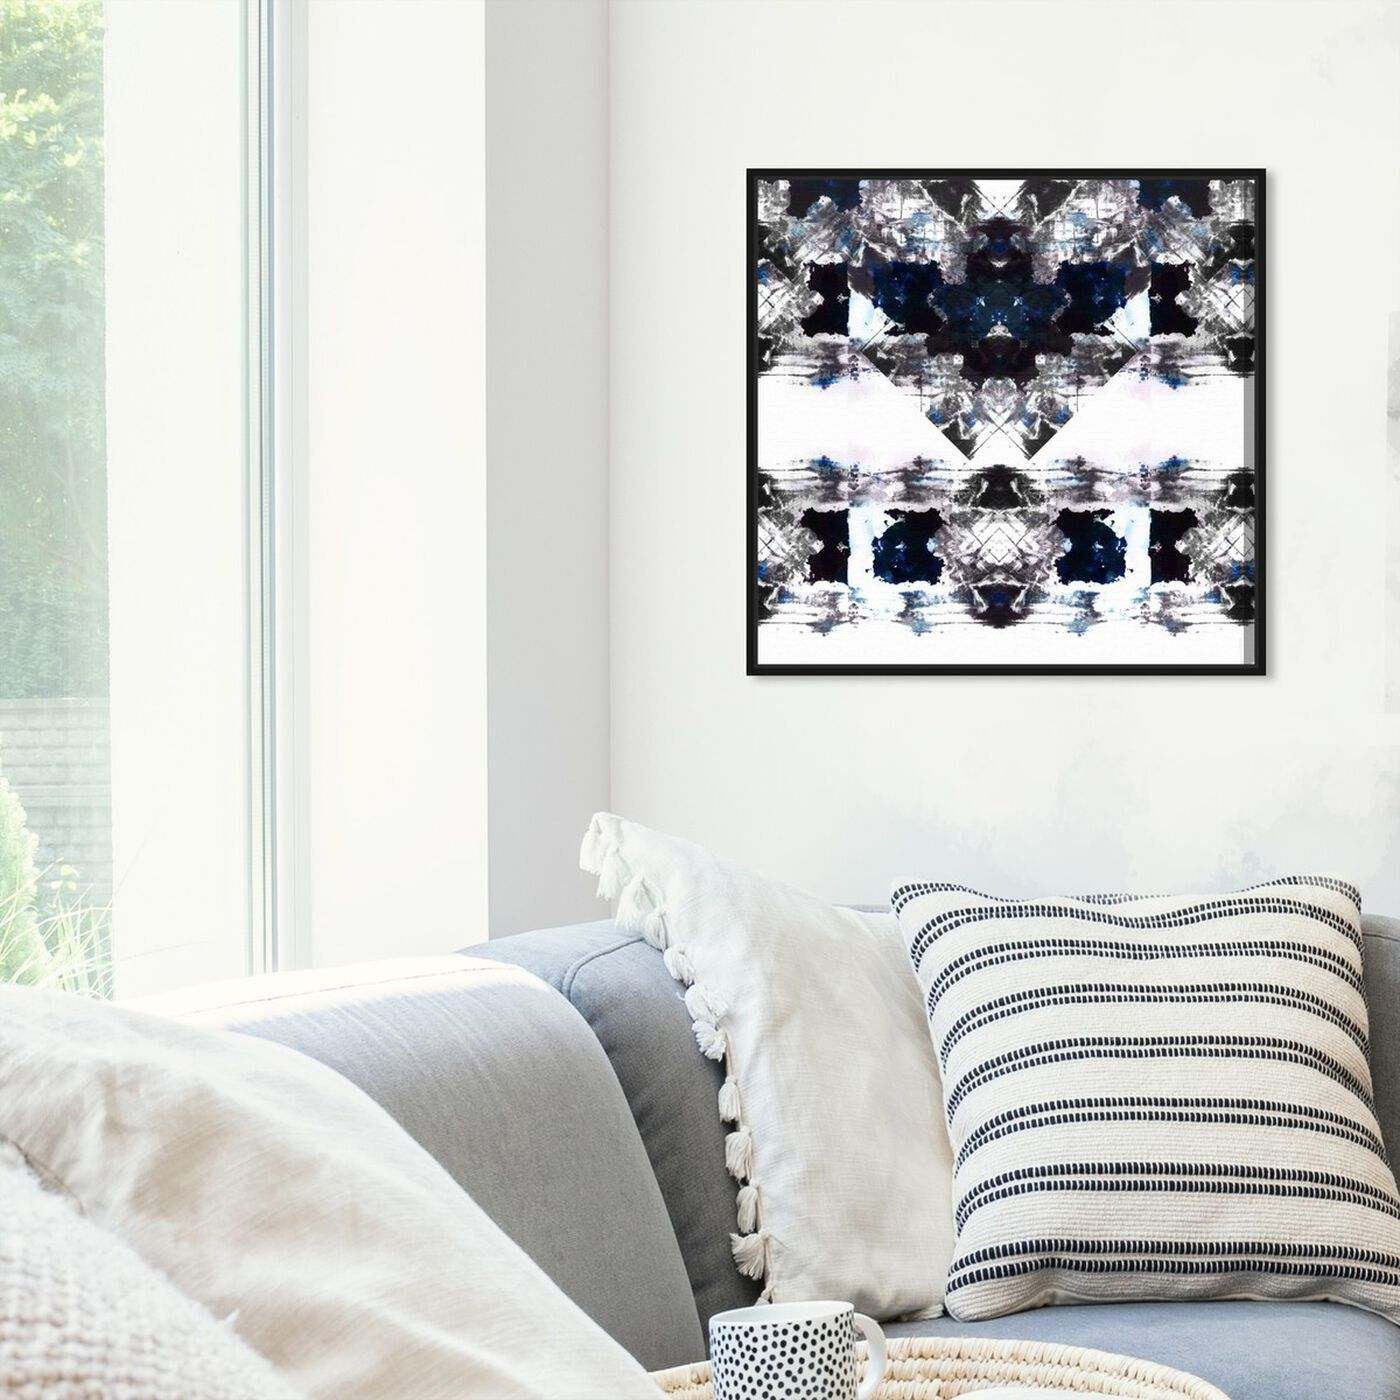 Hanging view of Oeuvre featuring abstract and patterns art.